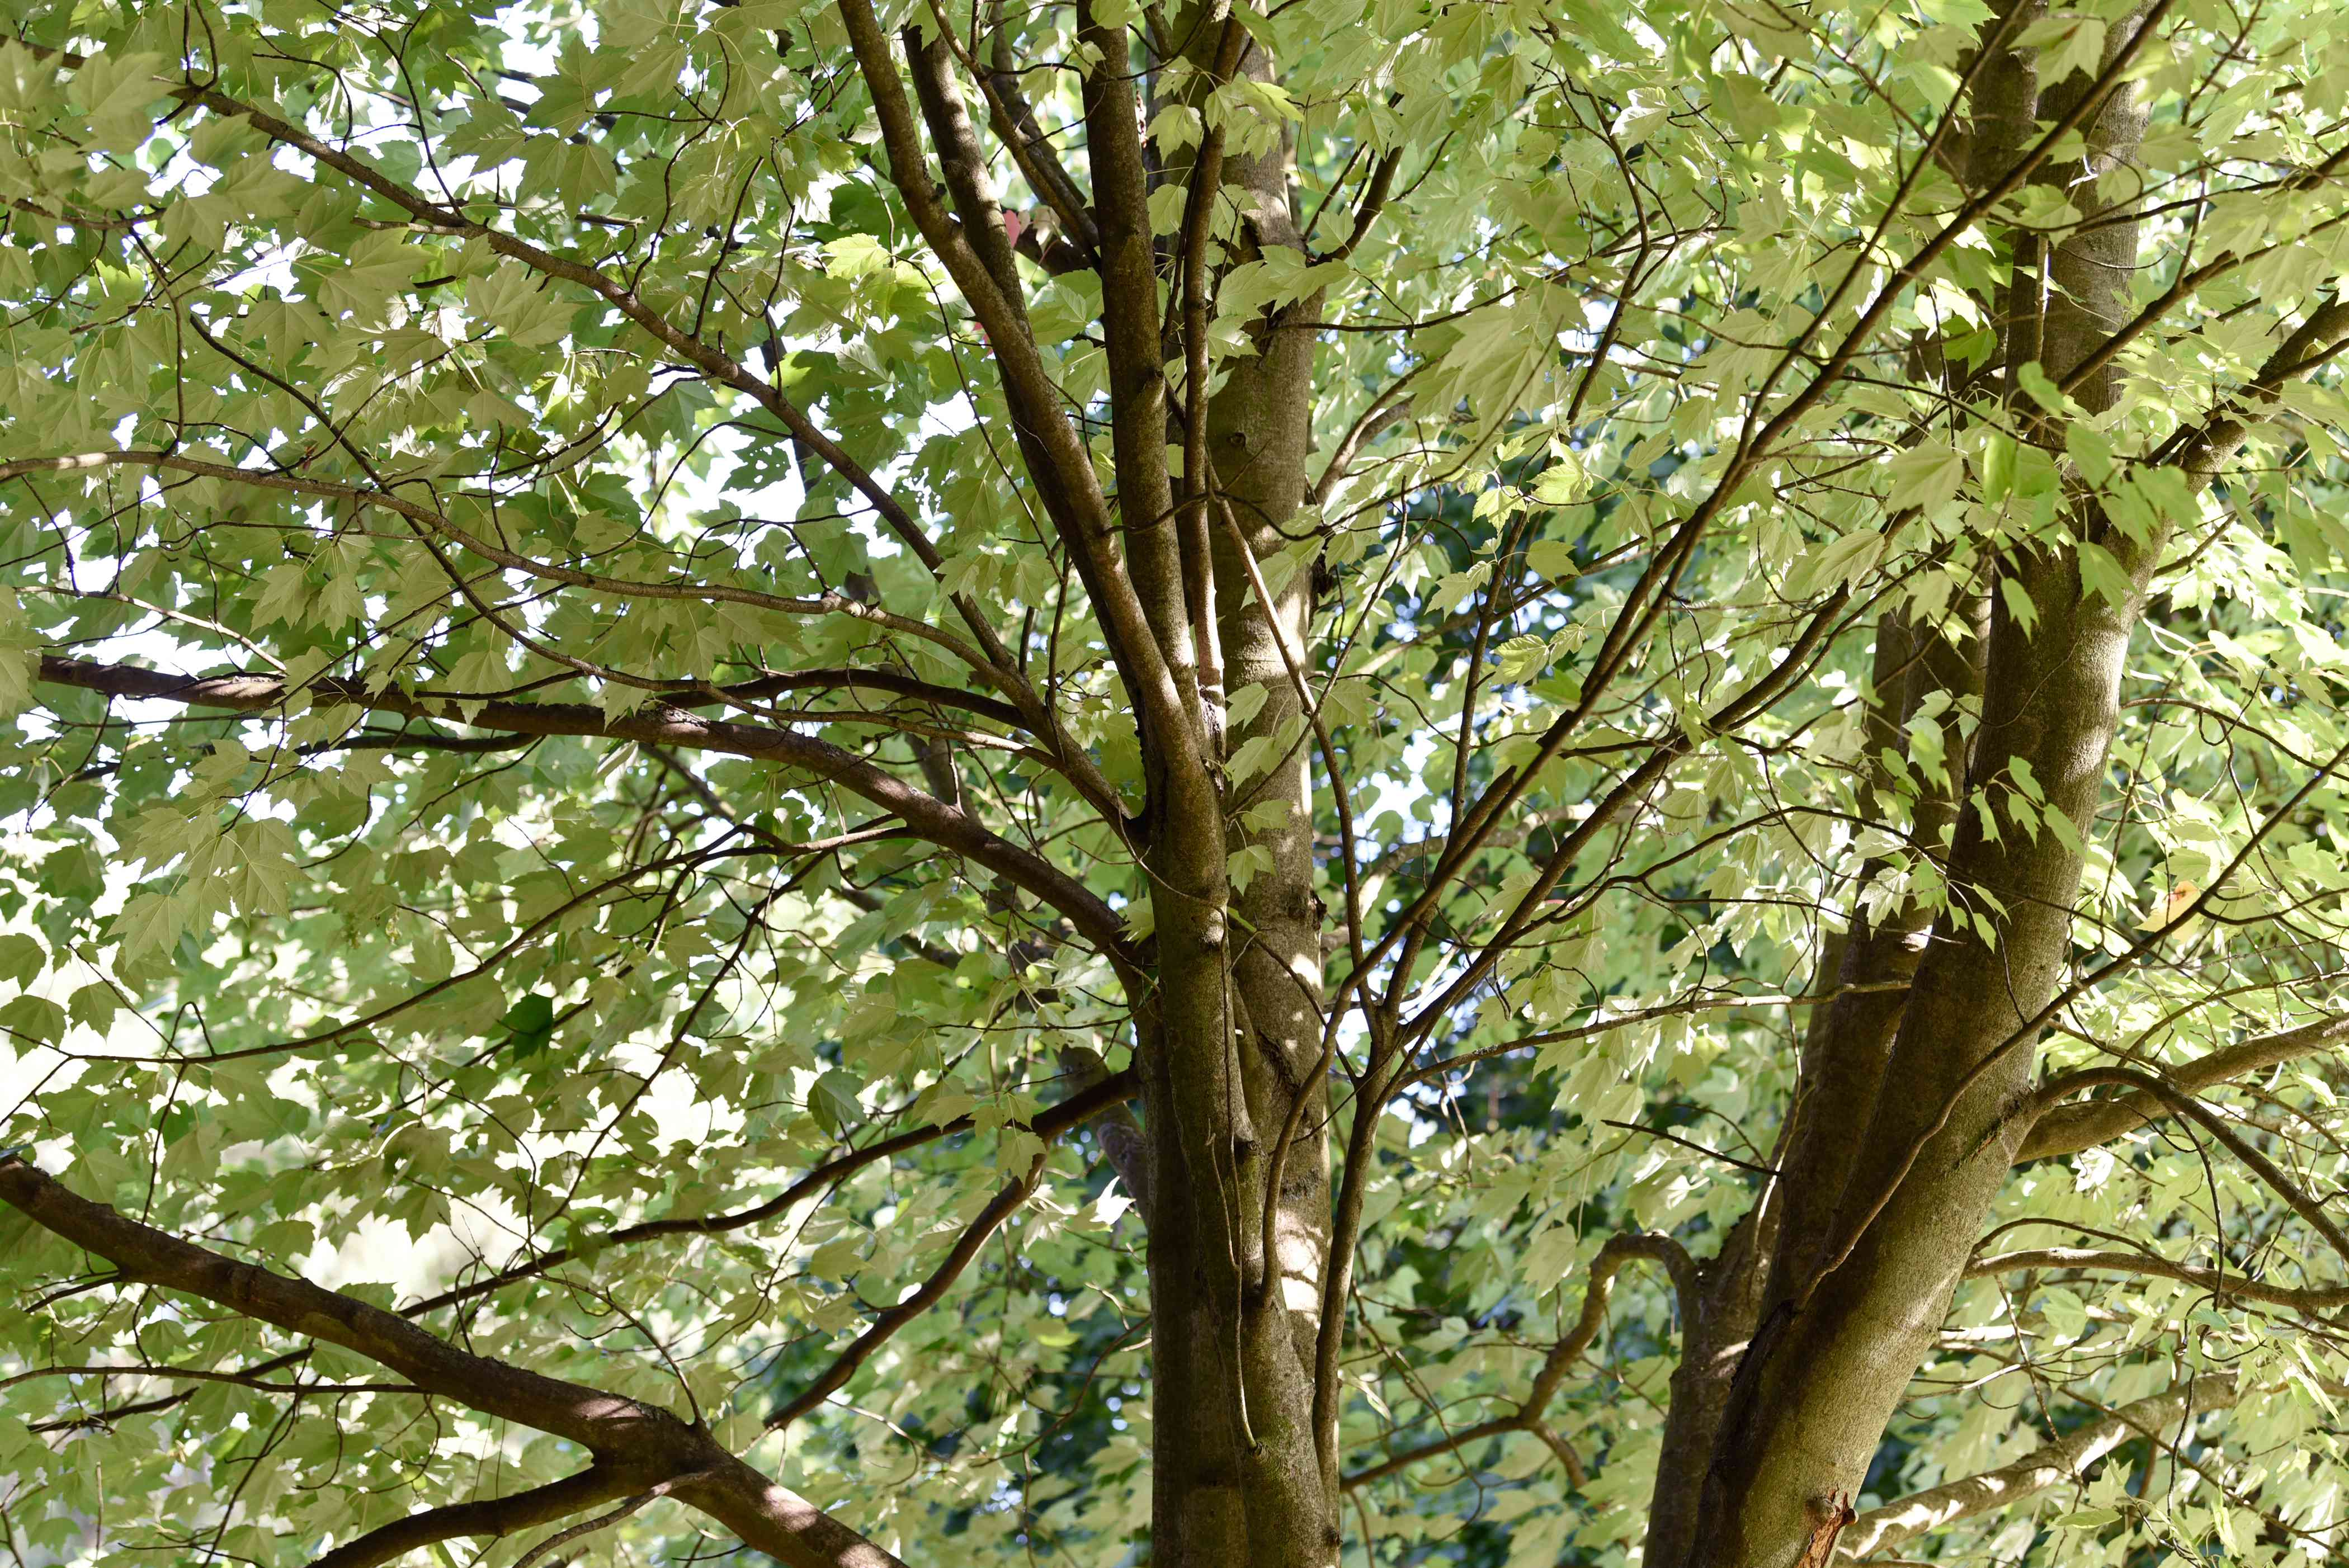 Red sunset maple tree with dark brown bark and sprawling branches with light green leaves